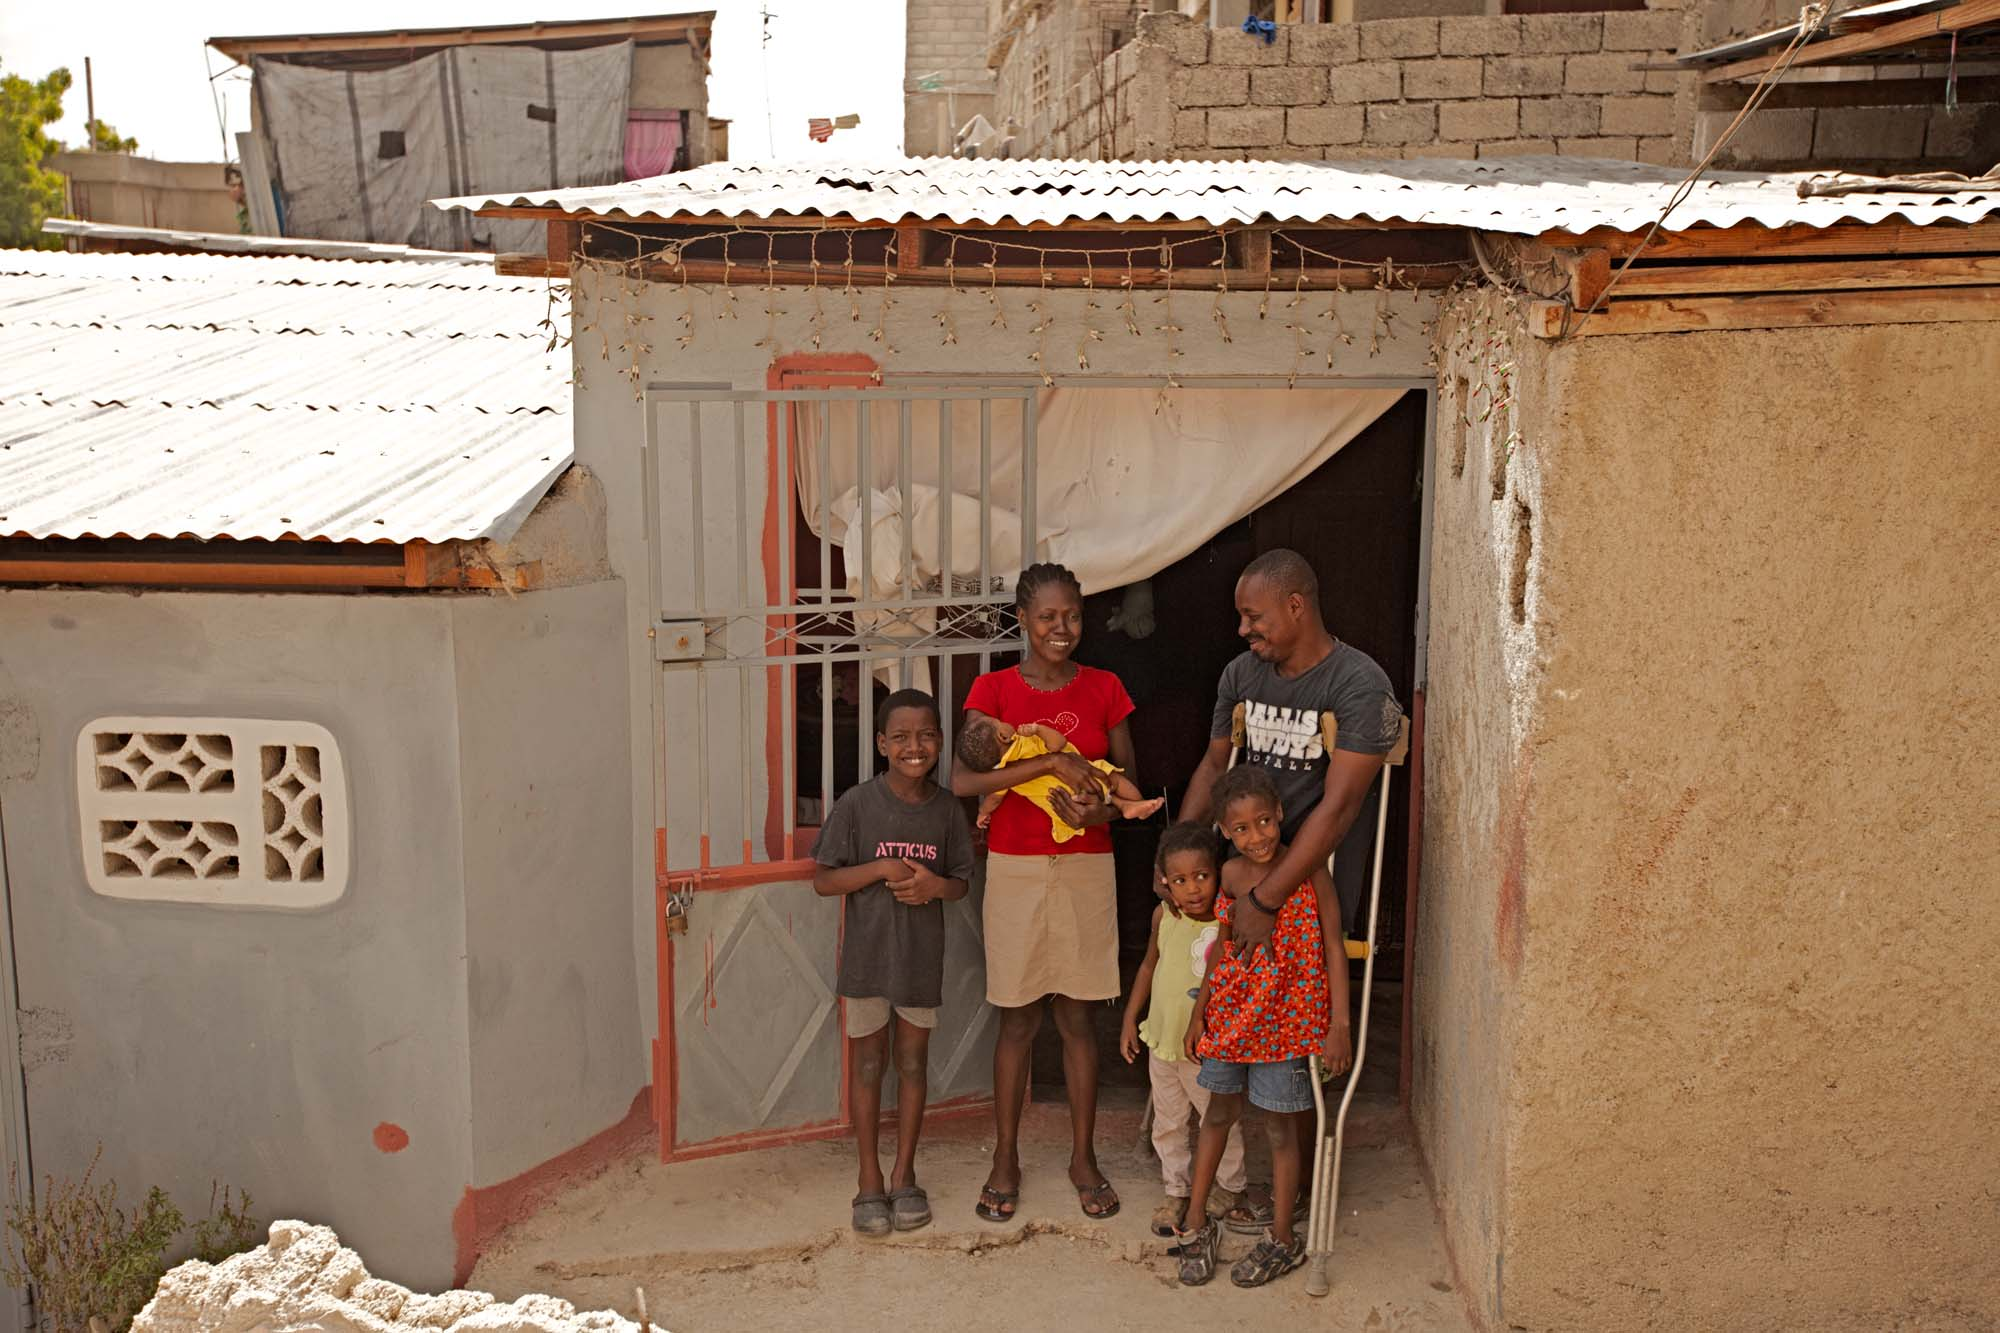 A family group stand in front of doorway of a small concrete house with a tin roof.